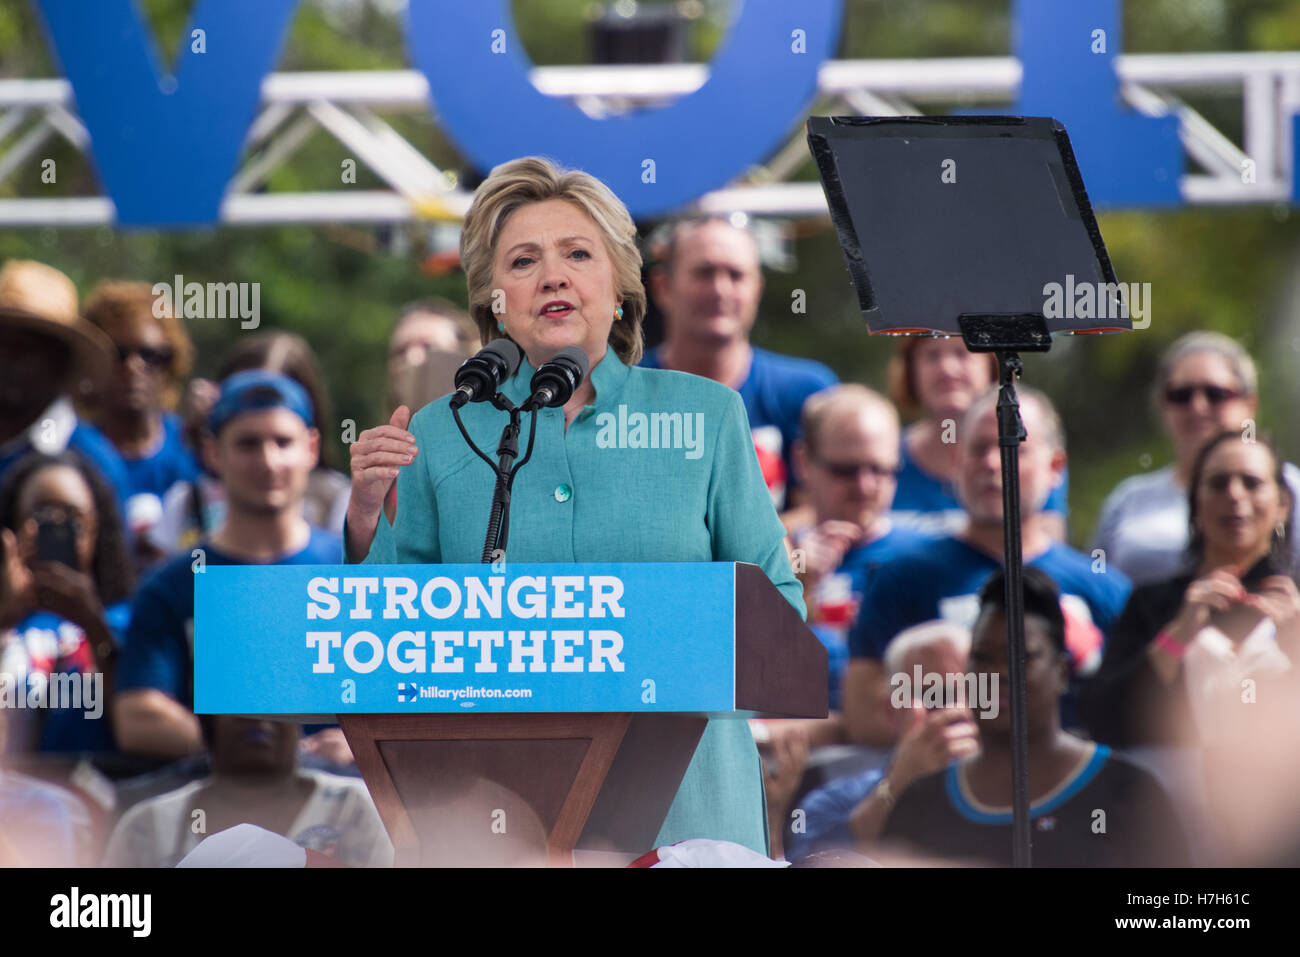 Hillary Clinton, former Secretary of State and Candidate for President of the US at a campaign rally 3 days before Stock Photo